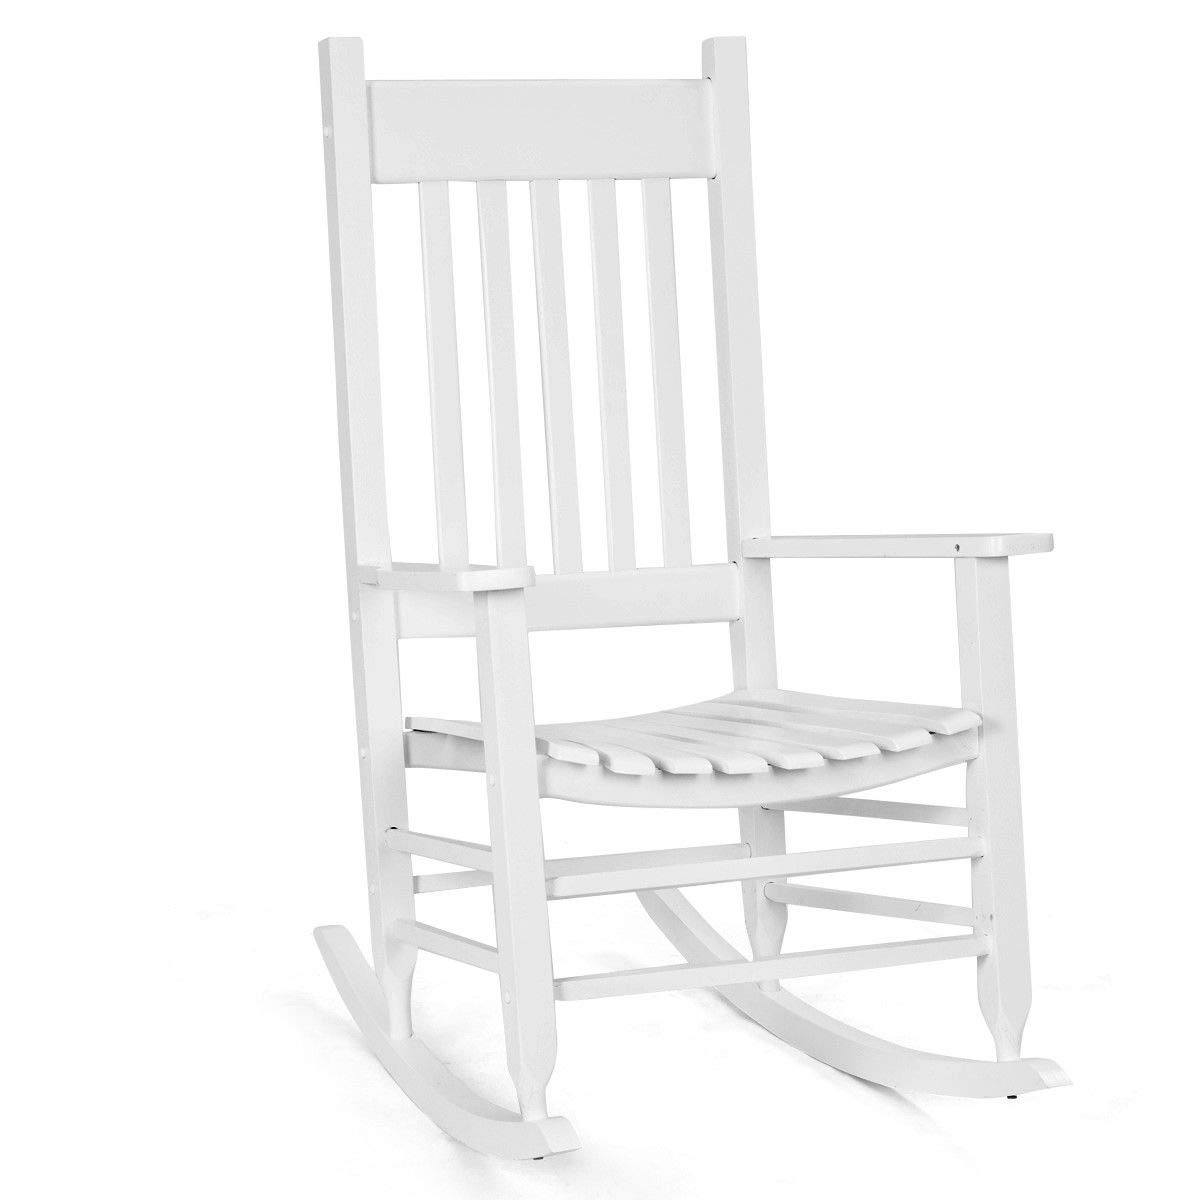 Giantex Outdoor Wood Rocking Chair Porch Rocker 100% Natural Solid Wooden Indoor Deck Patio Backyard Living Room Rocking Chairs(White)